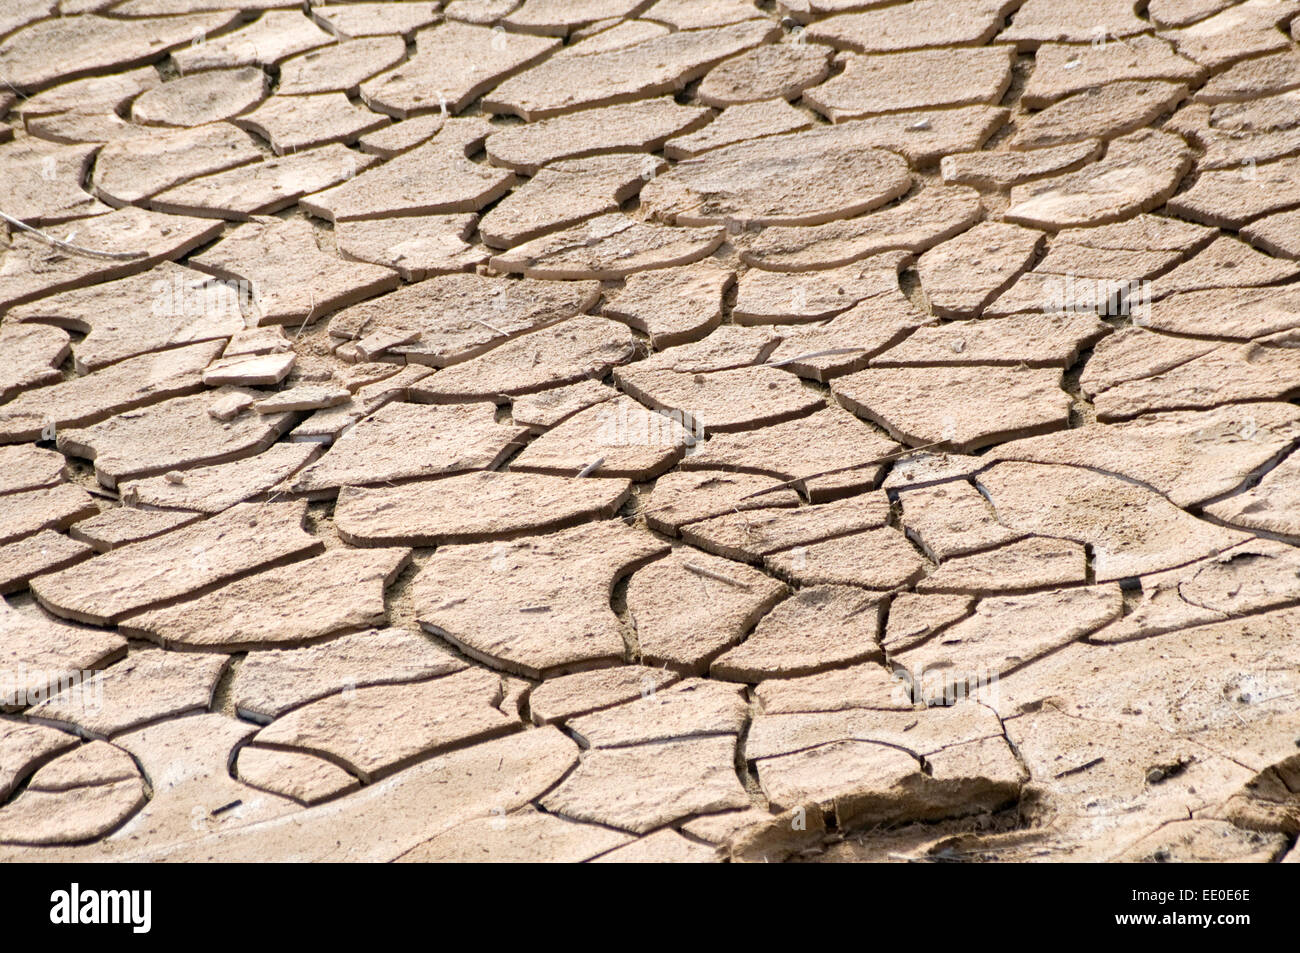 dry ground parched soil cracked earth crack cracks drought droughts hot weather heatwave heatwaves heat waves waves - Stock Image